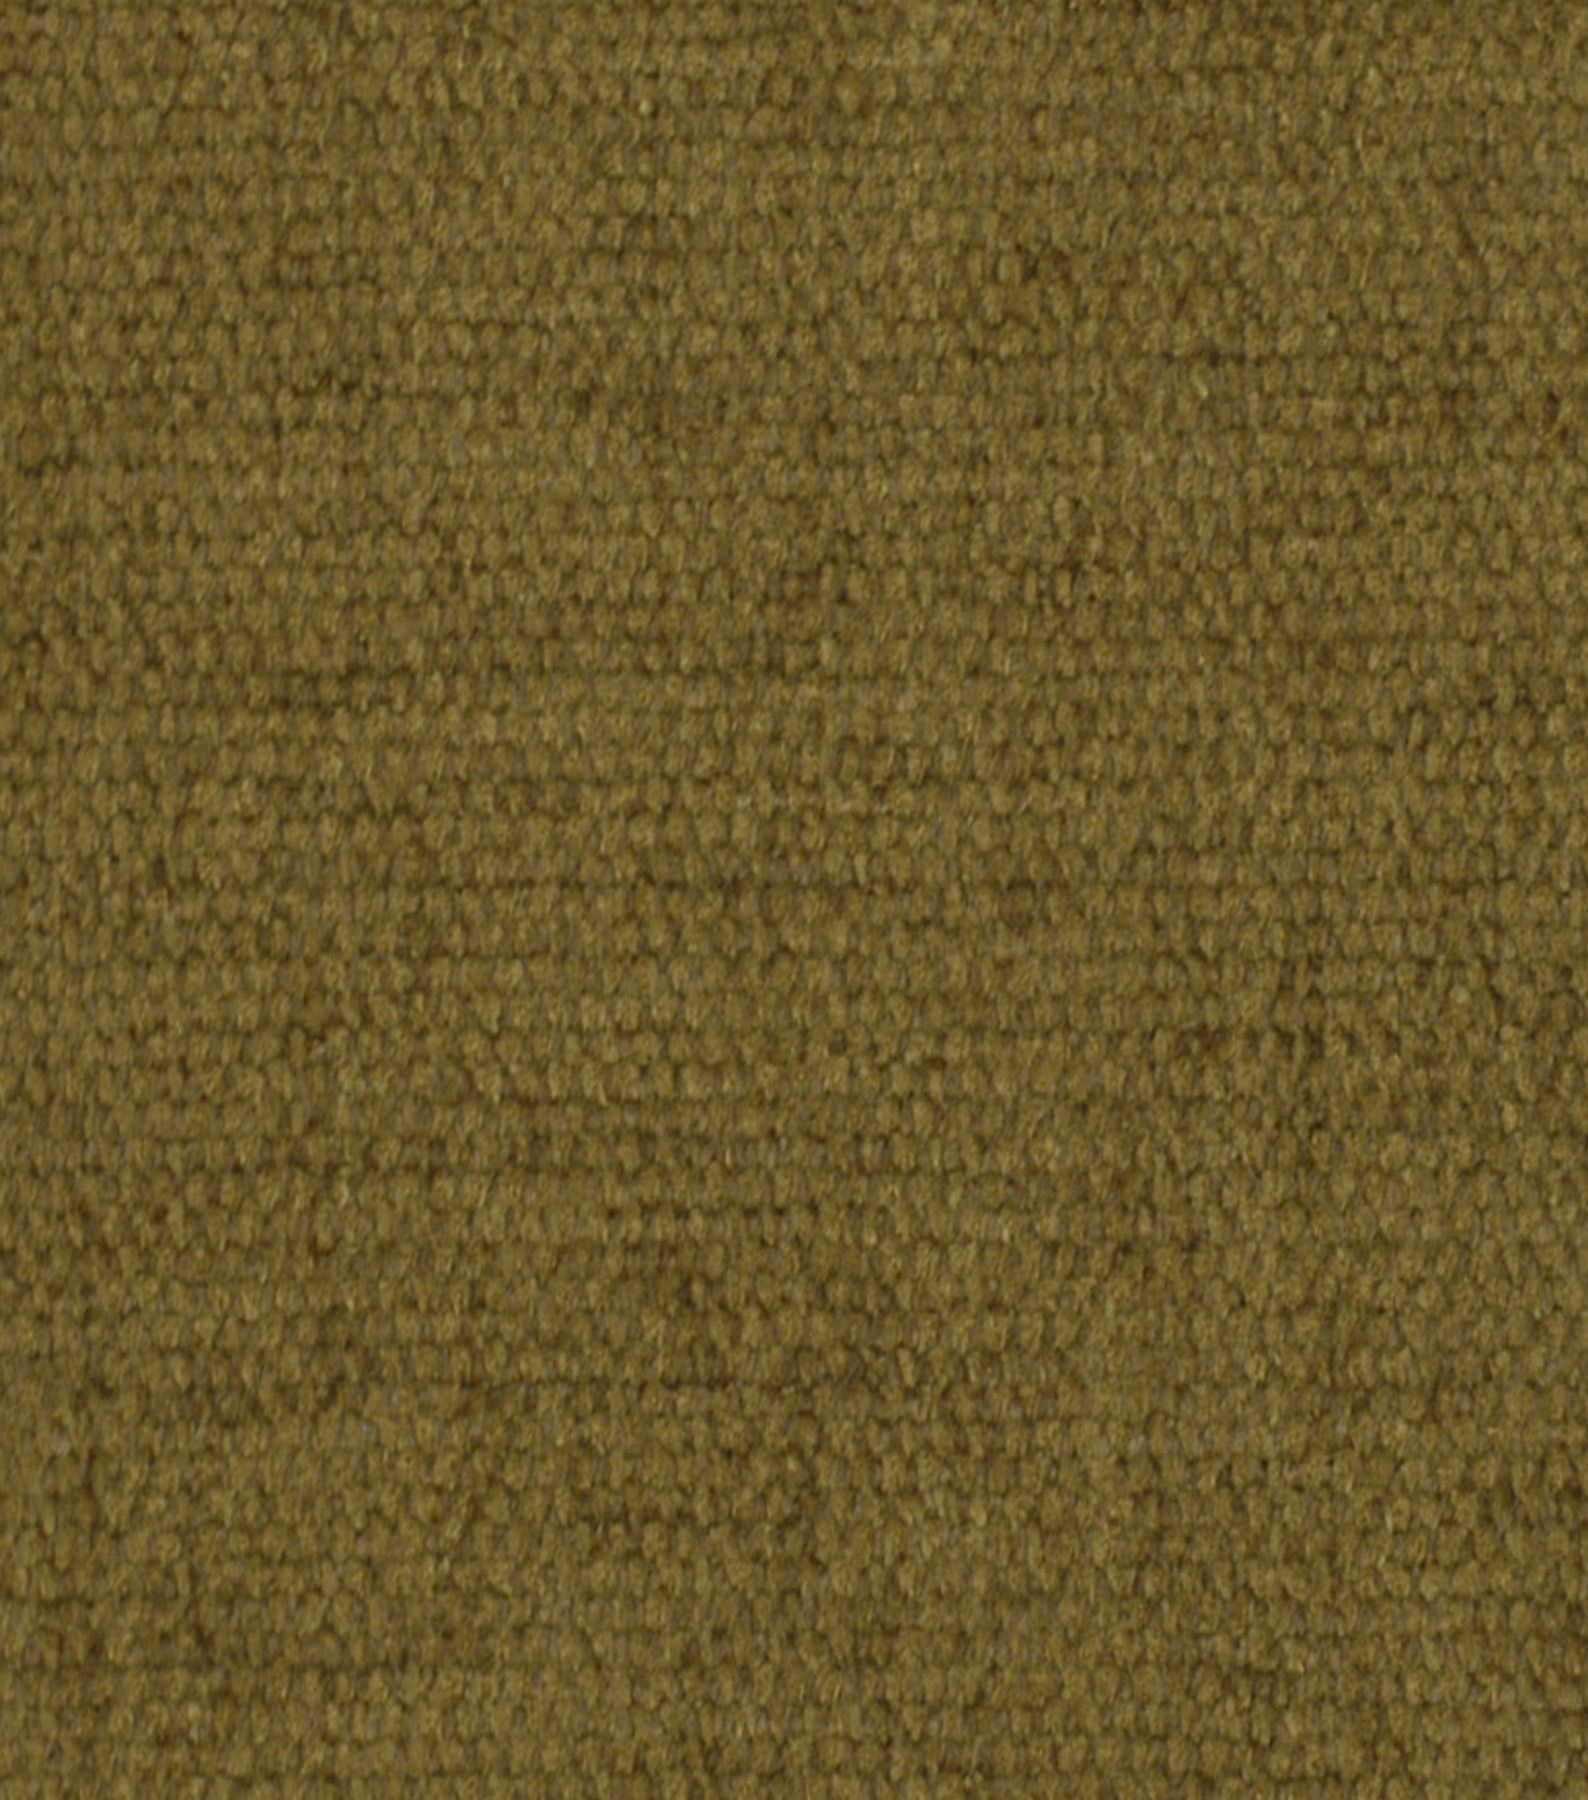 Home Decor 8\u0022x8\u0022 Fabric Swatch-Signature Series Rodez Hickory